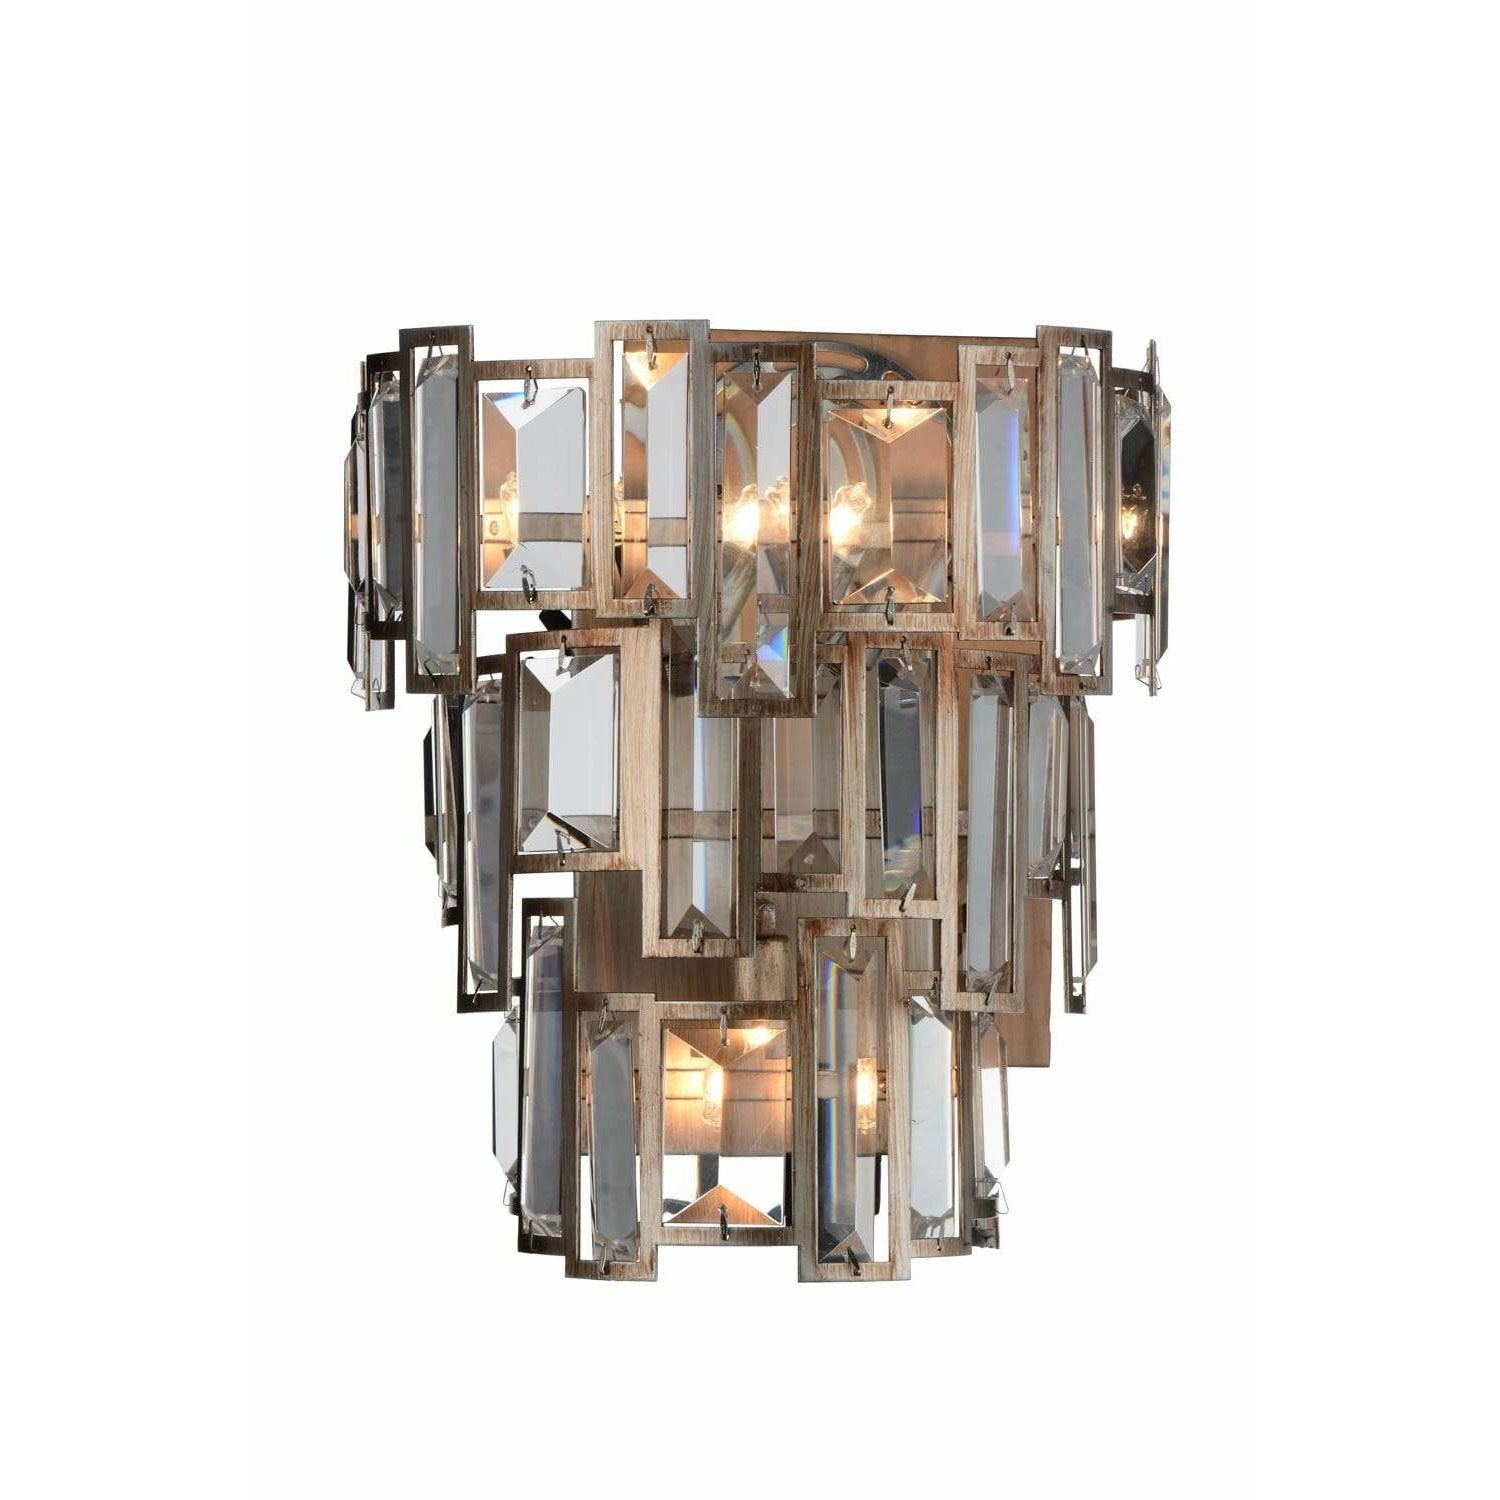 CWI Lighting Wall Sconces Champagne / K9 Clear Quida 3 Light Wall Sconce with Champagne finish by CWI Lighting 9903W10-3-193